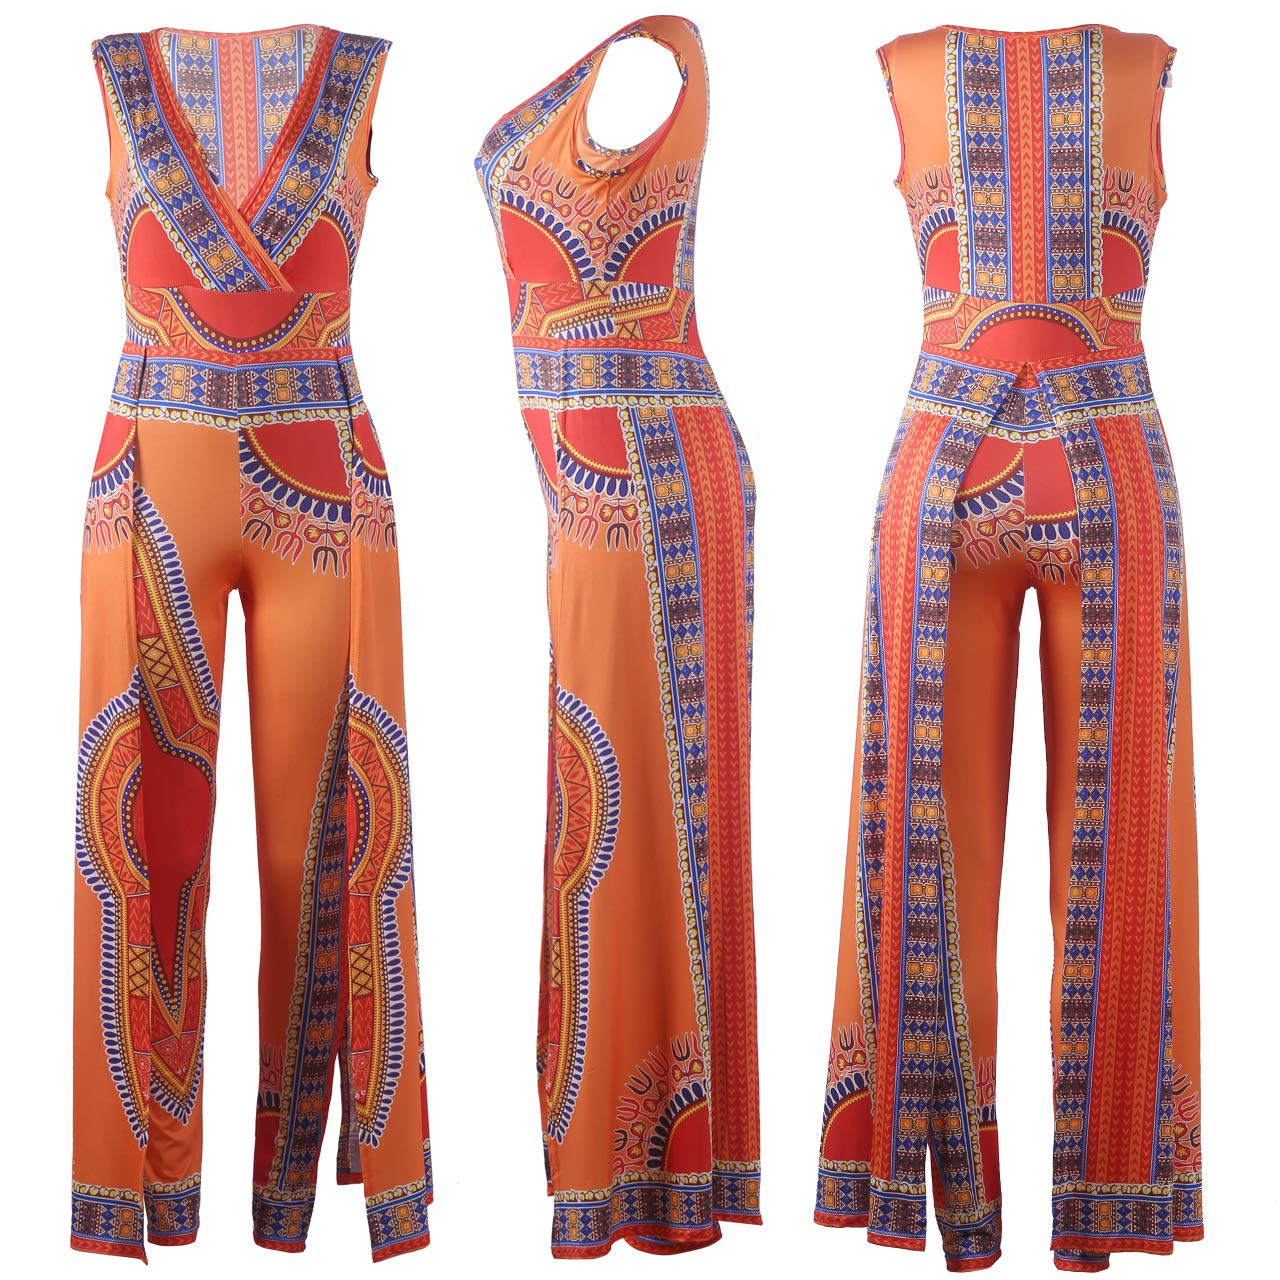 vnytop Women African Ethnic Paisley Print V Wrap Sleeveless Long Jumpsuit Romper Dress